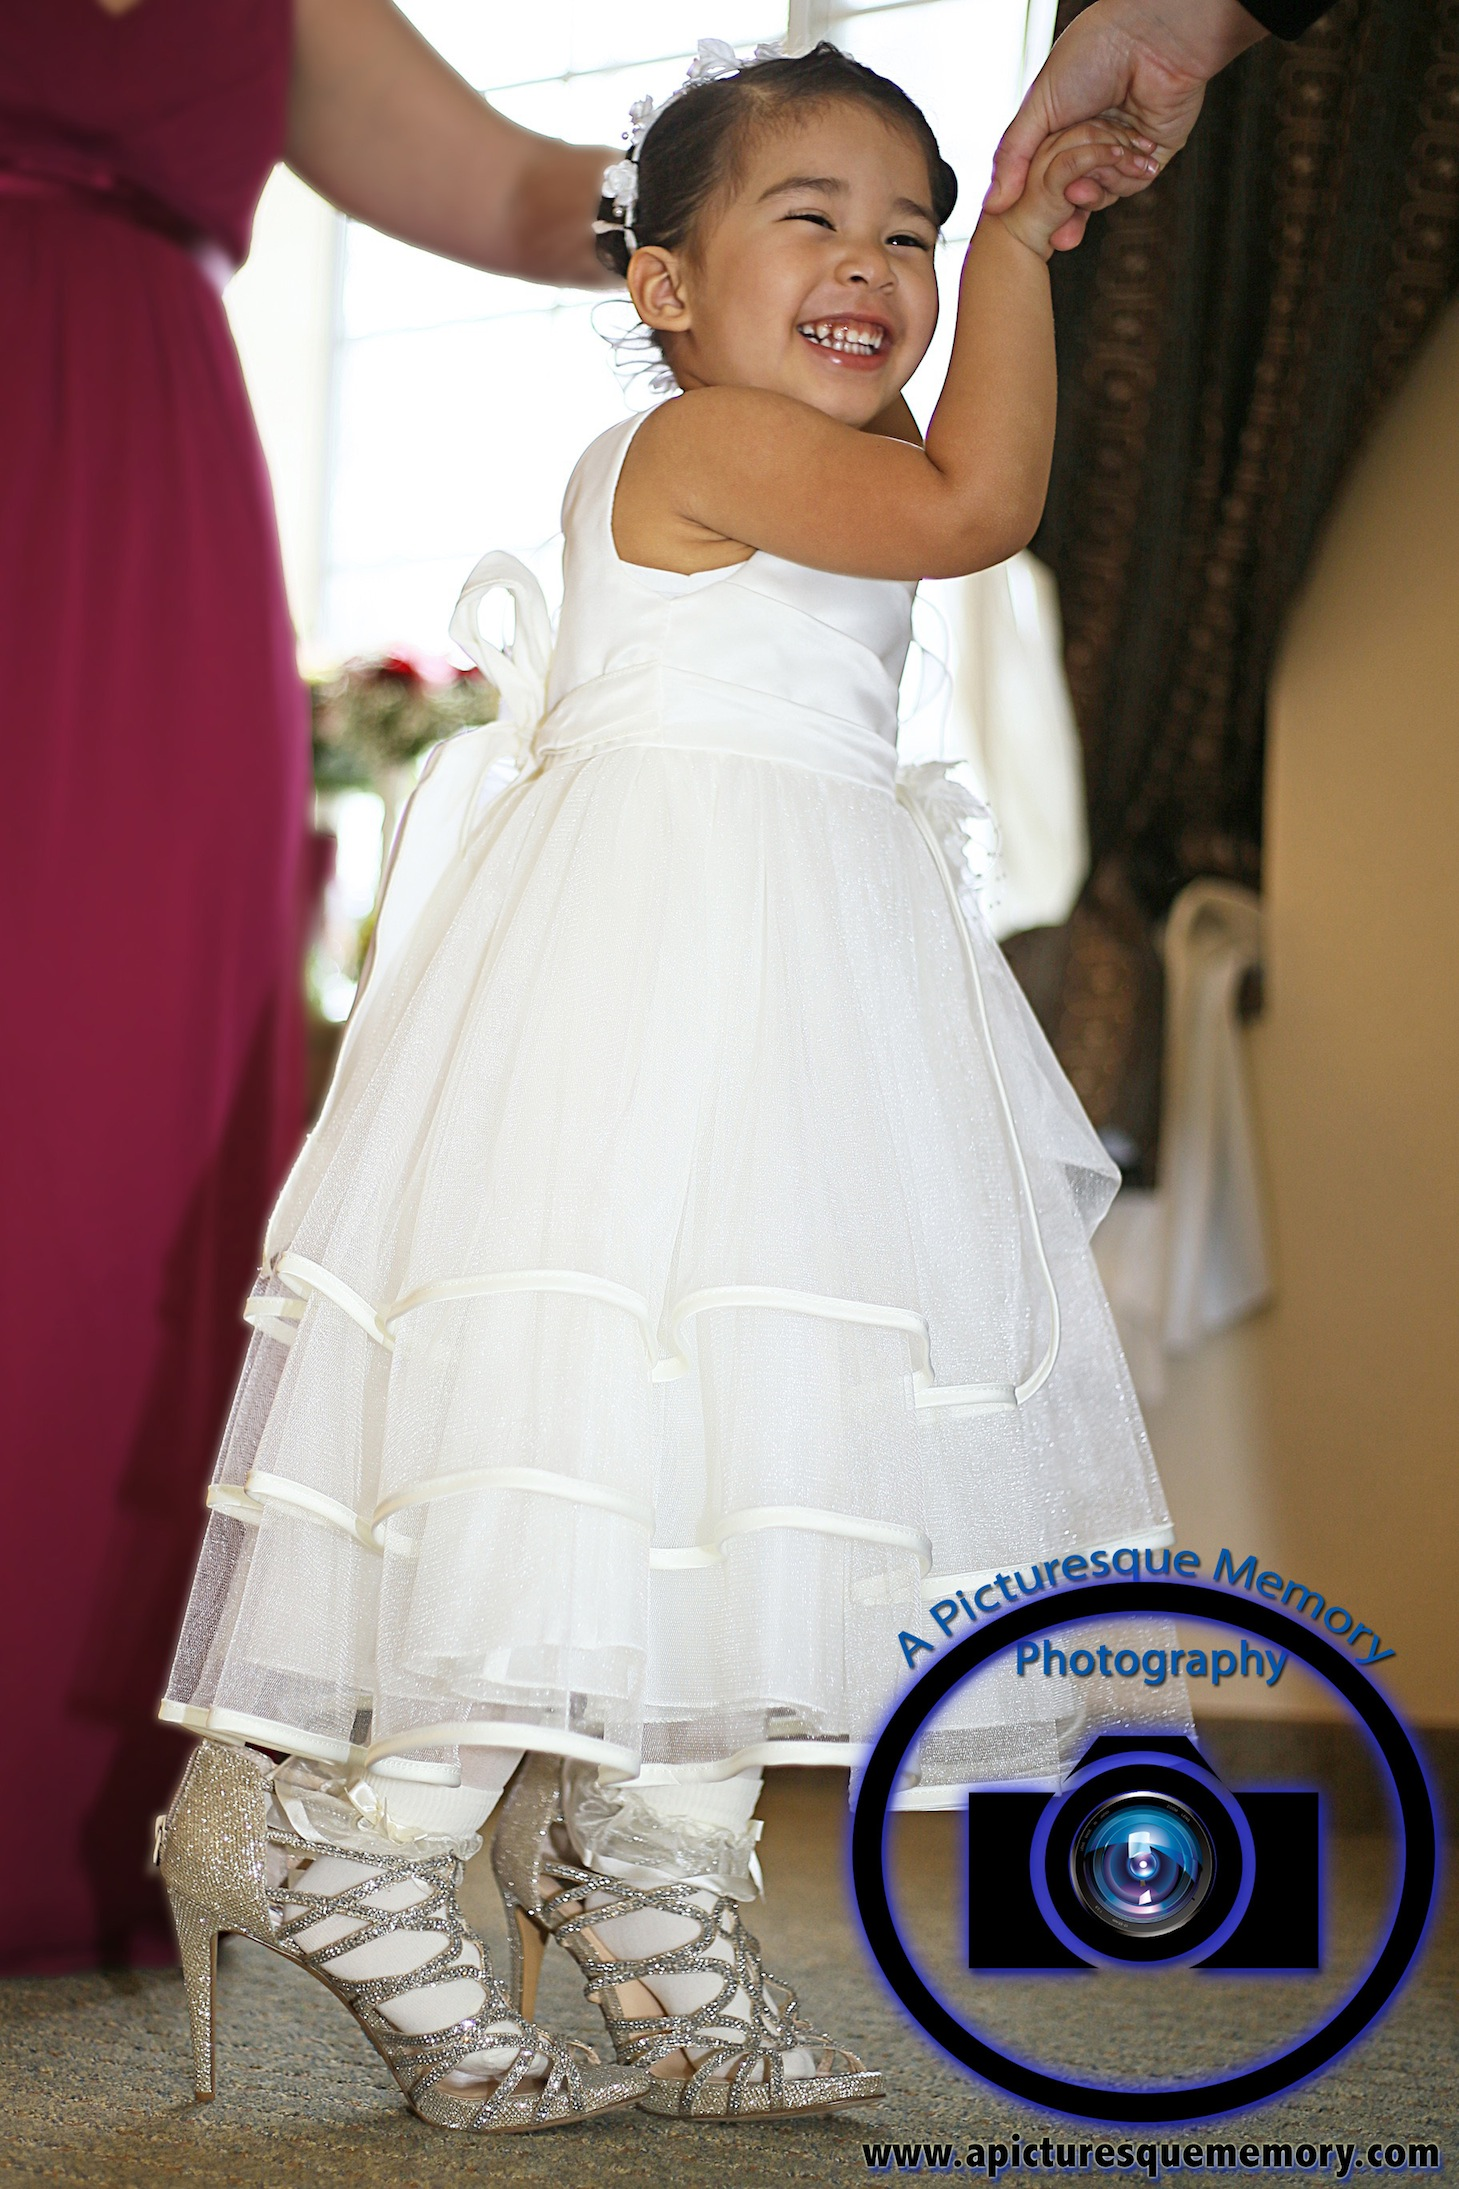 #njwedding, #njweddingphotography, #northbrunswickweddingphotographer#weddingphotos, #apicturesquememoryphotography, #staybridgesuitesweddingphotographer, #flowergirl, #bridesheels